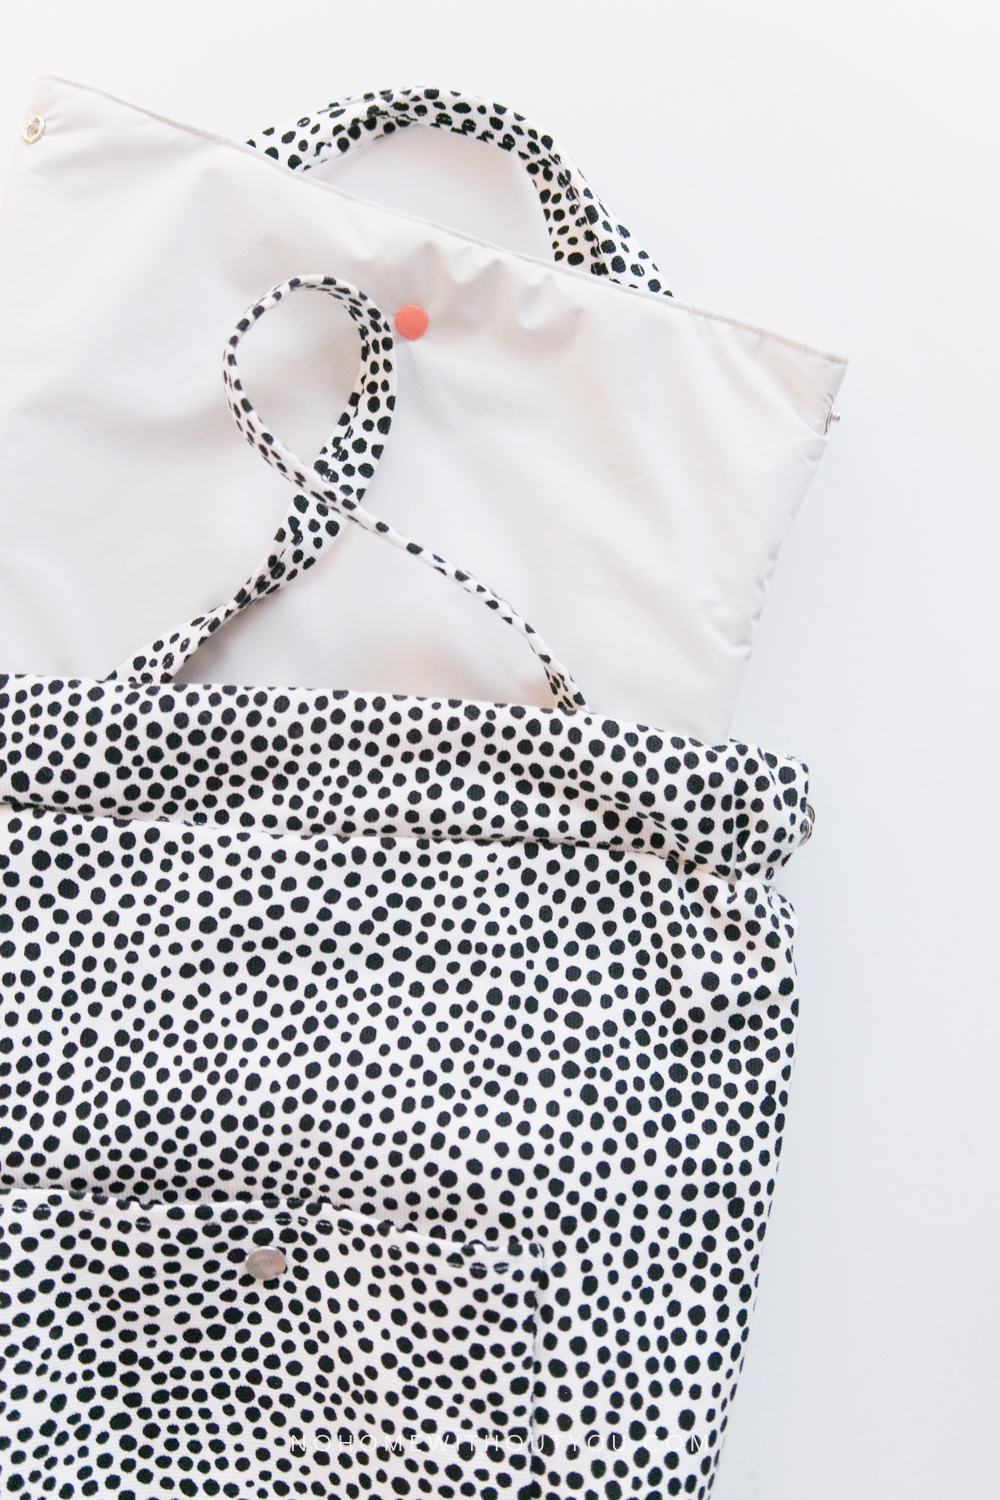 DIY-Backpack-with-free-pattern-No-Home-Without-You-18-of-19